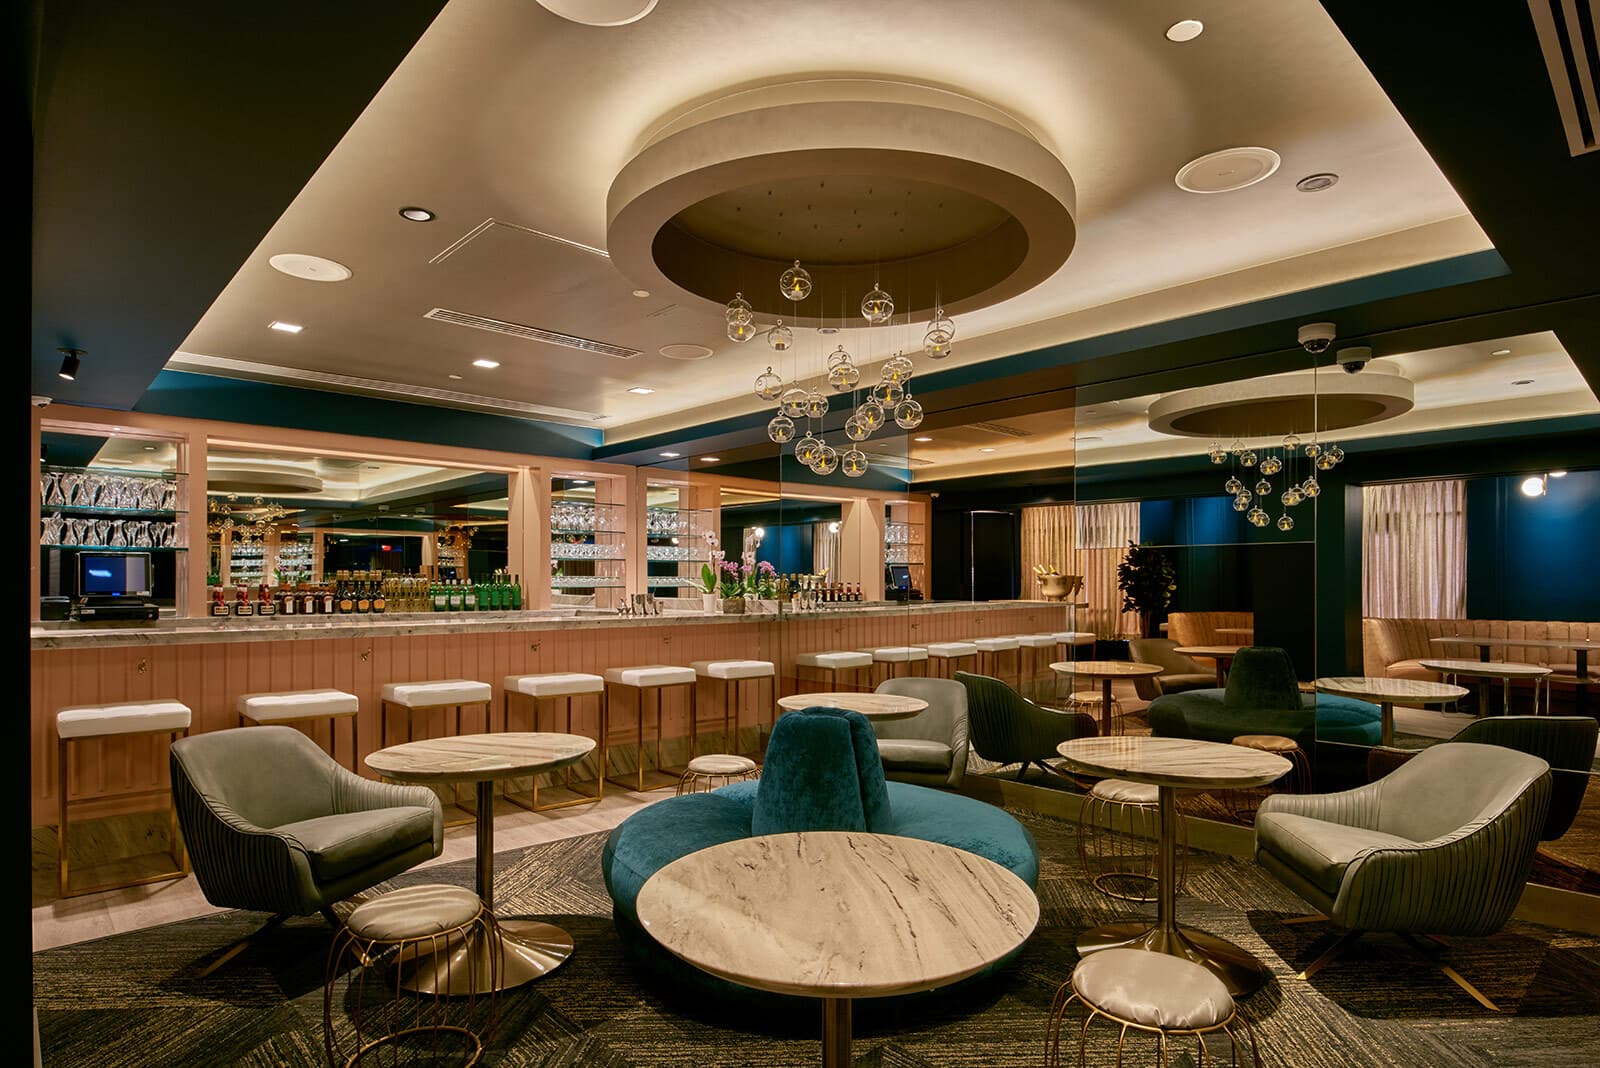 Ms Peacock's Champagne Lounge by CORE architecture + design